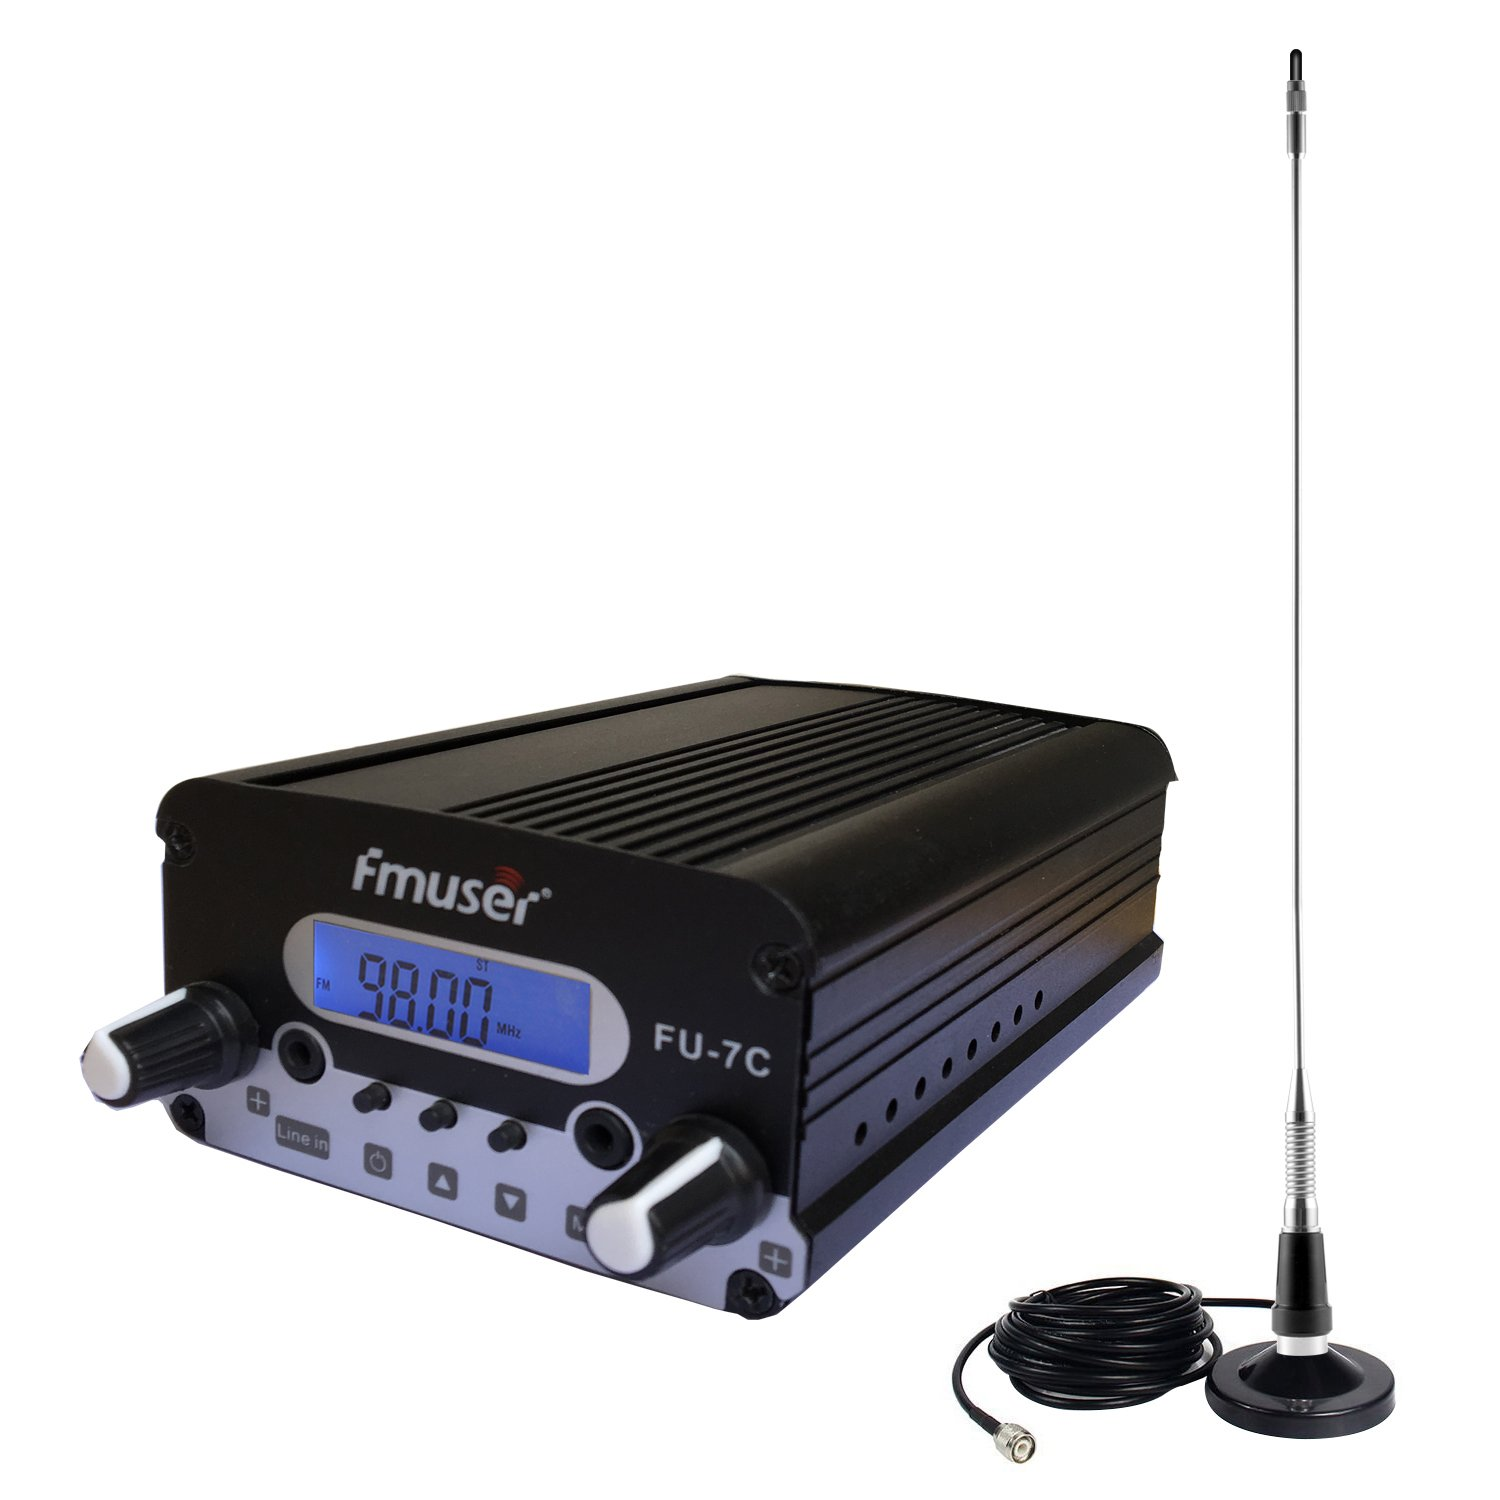 FMUSER FU-7C 1.5W / 7W Holiday Light Show FM Transmitter + Magnetic Mount Antenna + Power Adapter, FM Transmitter KIT for House, Campus, Church, Camping, Christmas Yard Displays, Outdoor Movie Nights by fmuser.org